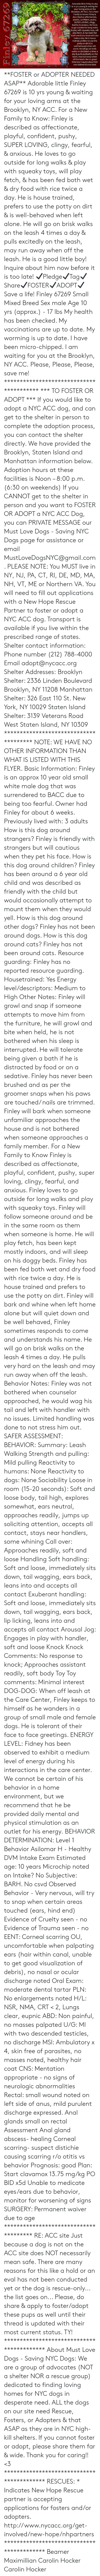 Being Alone, Cats, and Children: Adorable little Finley 67269  is 10 yrs young & waiting for  your loving arms at the  Brooklyn, NY ACC. For a New  Family to Know: Finley is  described as affectionate,  playful, confident, pushy,  SUPER LOVING, clingy,  fearful, & anxious. He loves  to go outside for long walks  & play with squeaky toys, will  play fetch, & has been fed  both wet & dry food with rice  twice a day. He is house  trained, prefers to use the  potty on dirt & is  well-behaved when left  alone. He will go on brisk  walks on the leash 4 times a  day & pulls excitedly on the  leash, may run away when  off the leash. He is a good  little boy! Inquire about him  now before it is too late!  Finley 67269 **FOSTER or ADOPTER NEEDED ASAP** Adorable little Finley 67269 is 10 yrs young & waiting for your loving arms at the Brooklyn, NY ACC. For a New Family to Know: Finley is described as affectionate, playful, confident, pushy, SUPER LOVING, clingy, fearful, & anxious. He loves to go outside for long walks & play with squeaky toys, will play fetch, & has been fed both wet & dry food with rice twice a day. He is house trained, prefers to use the potty on dirt & is well-behaved when left alone. He will go on brisk walks on the leash 4 times a day & pulls excitedly on the leash, may run away when off the leash. He is a good little boy! Inquire about him now before it is too late!  ✔Pledge✔Tag✔Share✔FOSTER✔ADOPT✔Save a life!  Finley 67269 Small Mixed Breed Sex male Age 10 yrs (approx.) - 17 lbs  My health has been checked.  My vaccinations are up to date. My worming is up to date.  I have been micro-chipped.   I am waiting for you at the Brooklyn, NY ACC. Please, Please, Please, save me!  **************************************** *** TO FOSTER OR ADOPT ***   If you would like to adopt a NYC ACC dog, and can get to the shelter in person to complete the adoption process, you can contact the shelter directly. We have provided the Brooklyn, Staten Island and Manhattan information below. Adoption hours at these facilities is Noon – 8:00 p.m. (6:30 on weekends)  If you CANNOT get to the shelter in person and you want to FOSTER OR ADOPT a NYC ACC Dog, you can PRIVATE MESSAGE our Must Love Dogs - Saving NYC Dogs page for assistance or email MustLoveDogsNYC@gmail.com.   PLEASE NOTE: You MUST live in NY, NJ, PA, CT, RI, DE, MD, MA, NH, VT, ME or Northern VA. You will need to fill out applications with a New Hope Rescue Partner to foster or adopt a NYC ACC dog. Transport is available if you live within the prescribed range of states.  Shelter contact information: Phone number (212) 788-4000 Email adopt@nycacc.org  Shelter Addresses: Brooklyn Shelter: 2336 Linden Boulevard Brooklyn, NY 11208 Manhattan Shelter: 326 East 110 St. New York, NY 10029 Staten Island Shelter: 3139 Veterans Road West Staten Island, NY 10309 **************************************  NOTE: WE HAVE NO OTHER INFORMATION THAN WHAT IS LISTED WITH THIS FLYER.  Basic Information: Finley is an approx 10 year old small white male dog that was surrendered to BACC due to being too fearful. Owner had Finley for about 6 weeks.   Previously lived with: 3 adults   How is this dog around strangers? Finley is friendly with strangers but will cautious when they pet his face.   How is this dog around children? Finley has been around a 6 year old child and was described as friendly with the child but would occasionally attempt to mount them when they would yell.   How is this dog around other dogs? Finley has not been around dogs.   How is this dog around cats? Finley has not been around cats.  Resource guarding: Finley has no reported resource guarding.   Housetrained: Yes  Energy level/descriptors: Medium to High  Other Notes: Finley will growl and snap if someone attempts to move him from the furniture, he will growl and bite when held, he is not bothered when his sleep is interrupted. He will tolerate being given a bath if he is distracted by food or on a sedative. Finley has never been brushed and as per the groomer snaps when his paws are touched/ nails are trimmed. Finley will bark when someone unfamiliar approaches the house and is not bothered when someone approaches a family member.  For a New Family to Know Finley is described as affectionate, playful, confident, pushy, super loving, clingy, fearful, and anxious. Finley loves to go outside for long walks and play with squeaky toys. Finley will follow someone around and be in the same room as them when someone is home. He will play fetch, has been kept mostly indoors, and will sleep on his doggy beds. Finley has been fed both wet and dry food with rice twice a day. He is house trained and prefers to use the potty on dirt. Finley will bark and whine when left home alone but will quiet down and be well behaved, Finley sometimes responds to come and understands his name. He will go on brisk walks on the leash 4 times a day. He pulls very hard on the leash and may run away when off the leash.   Behavior Notes: Finley was not bothered when counselor approached, he would wag his tail and left with handler with no issues. Limited handling was done to not stress him out.  SAFER ASSESSMENT: BEHAVIOR: Summary:  Leash Walking Strength and pulling: Mild pulling Reactivity to humans: None Reactivity to dogs: None  Sociability Loose in room (15-20 seconds): Soft and loose body, tail high, explores somewhat, ears neutral, approaches readily, jumps up soliciting attention, accepts all contact, stays near handlers, some whining Call over: Approaches readily, soft and loose  Handling  Soft handling: Soft and loose, immediately sits down, tail wagging, ears back, leans into and accepts all contact Exuberant handling: Soft and loose, immediately sits down, tail wagging, ears back, lip licking, leans into and accepts all contact  Arousal Jog: Engages in play with handler, soft and loose  Knock Knock Comments: No response to knock; Approaches assistant readily, soft body  Toy  Toy comments: Minimal interest  DOG-DOG: When off leash at the Care Center, Finley keeps to himself as he wanders in a group of small male and female dogs. He is tolerant of their face to face greetings.   ENERGY LEVEL: Fidney has been observed to exhibit a medium level of energy during his interactions in the care center. We cannot be certain of his behavior in a home environment, but we recommend that he be provided daily mental and physical stimulation as an outlet for his energy.  BEHAVIOR DETERMINATION: Level 1  Behavior Asilomar H - Healthy  DVM Intake Exam Estimated age: 10 years Microchip noted on Intake? No Subjective: BARH. No csvd Observed Behavior - Very nervous, will try to snap when certain areas touched (ears, hind end) Evidence of Cruelty seen - no Evidence of Trauma seen - no EENT: Corneal scarring OU, uncomfortable when palpating ears (hair within canal, unable to get good visualization of debris), no nasal or ocular discharge noted Oral Exam: moderate dental tartar PLN: No enlargements noted H/L: NSR, NMA, CRT < 2, Lungs clear, eupnic ABD: Non painful, no masses palpated U/G: MI with two descended testicles, no discharge MSI: Ambulatory x 4, skin free of parasites, no masses noted, healthy hair coat CNS: Mentation appropriate - no signs of neurologic abnormalities Rectal: small wound noted on left side of anus, mild purulent discharge expressed. Anal glands small on rectal  Assessment Anal gland abscess- healing Corneal scarring- suspect distichie causing scarring r/o otitis vs behavior Prognosis: good  Plan: Start clavamox 13.75 mg/kg PO BID x5d Unable to medicate eyes/ears due to behavior, monitor for worsening of signs  SURGERY:  Permanent waiver due to age ************************************** RE: ACC site Just because a dog is not on the ACC site does NOT necessarily mean safe. There are many reasons for this like a hold or an eval has not been conducted yet or the dog is rescue-only... the list goes on... Please, do share & apply to foster/adopt these pups as well until their thread is updated with their most current status. TY! ****************************************** About Must Love Dogs - Saving NYC Dogs: We are a group of advocates (NOT a shelter NOR a rescue group) dedicated to finding loving homes for NYC dogs in desperate need. ALL the dogs on our site need Rescue, Fosters, or Adopters & that ASAP as they are in NYC high-kill shelters. If you cannot foster or adopt, please share them far & wide. Thank you for caring!! <3 ****************************************** RESCUES: * Indicates New Hope Rescue partner is accepting applications for fosters and/or adopters. http://www.nycacc.org/get-involved/new-hope/nhpartners ****************************************** Beamer Maximillian Carolin Hocker Carolin Hocker